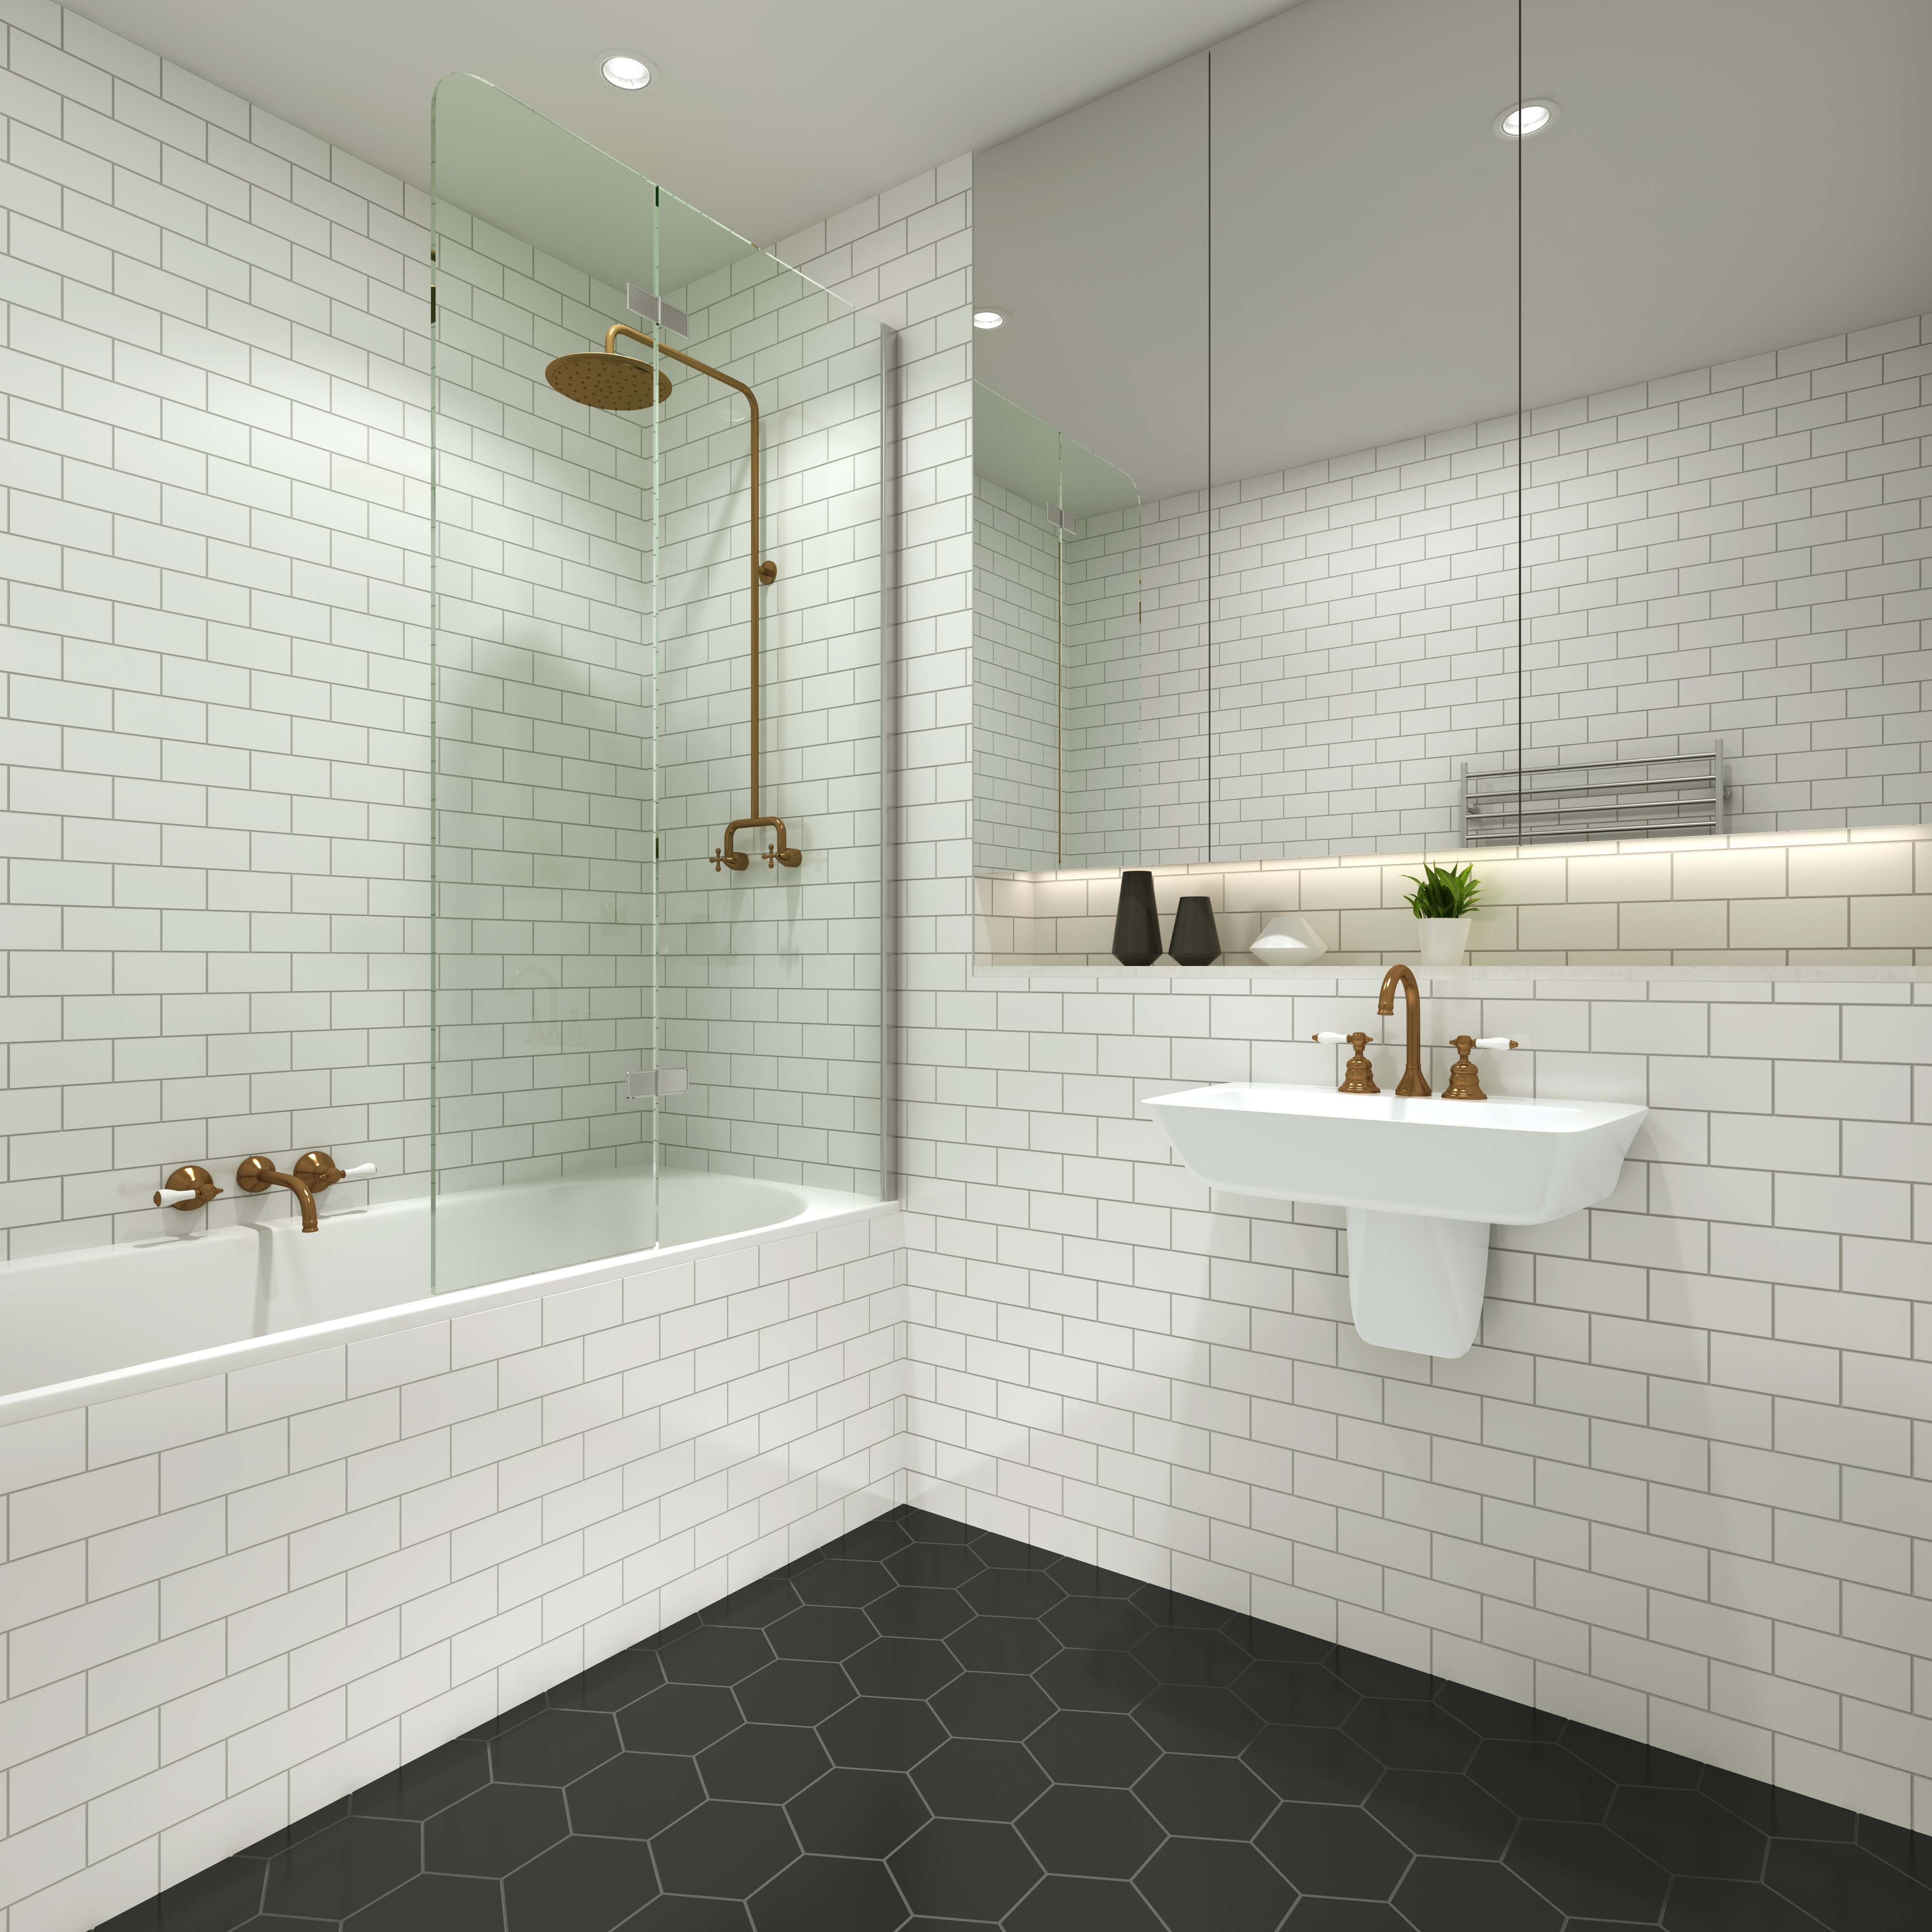 Pivotech duo bathpanel in this cute black white bathroom with pivotech duo bathpanel in this cute black white bathroom with hexagon floor tilebath dailygadgetfo Image collections